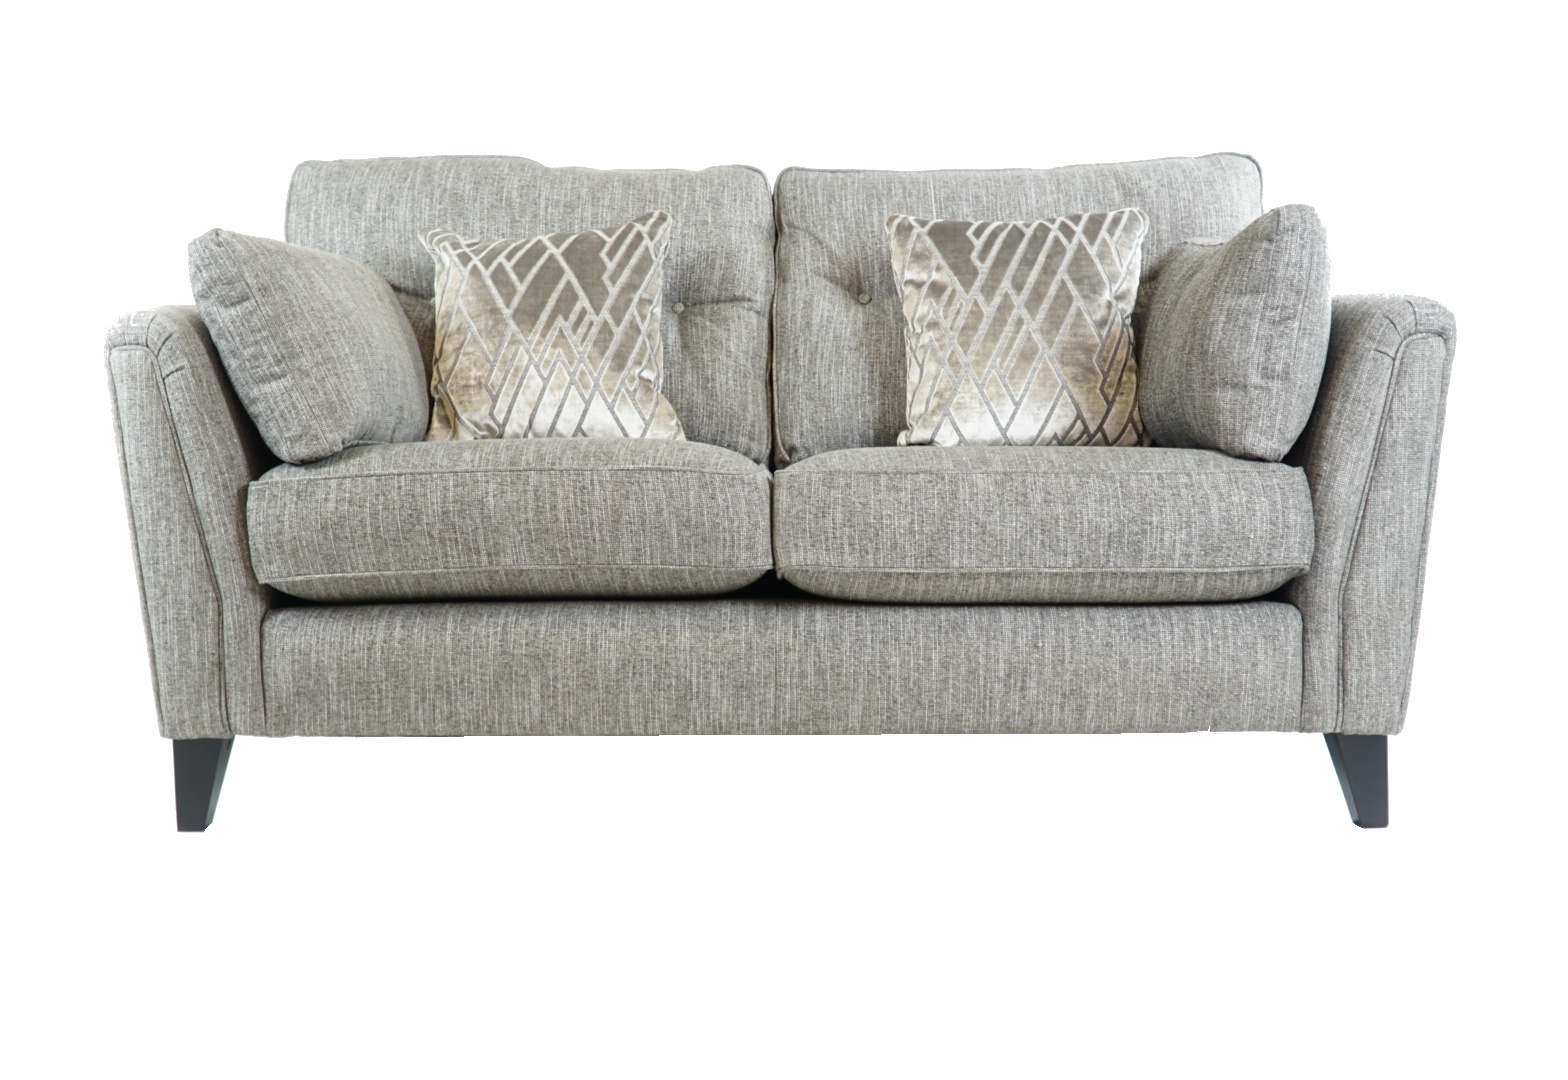 Harlow 2 Seater Sofa - OUTLET